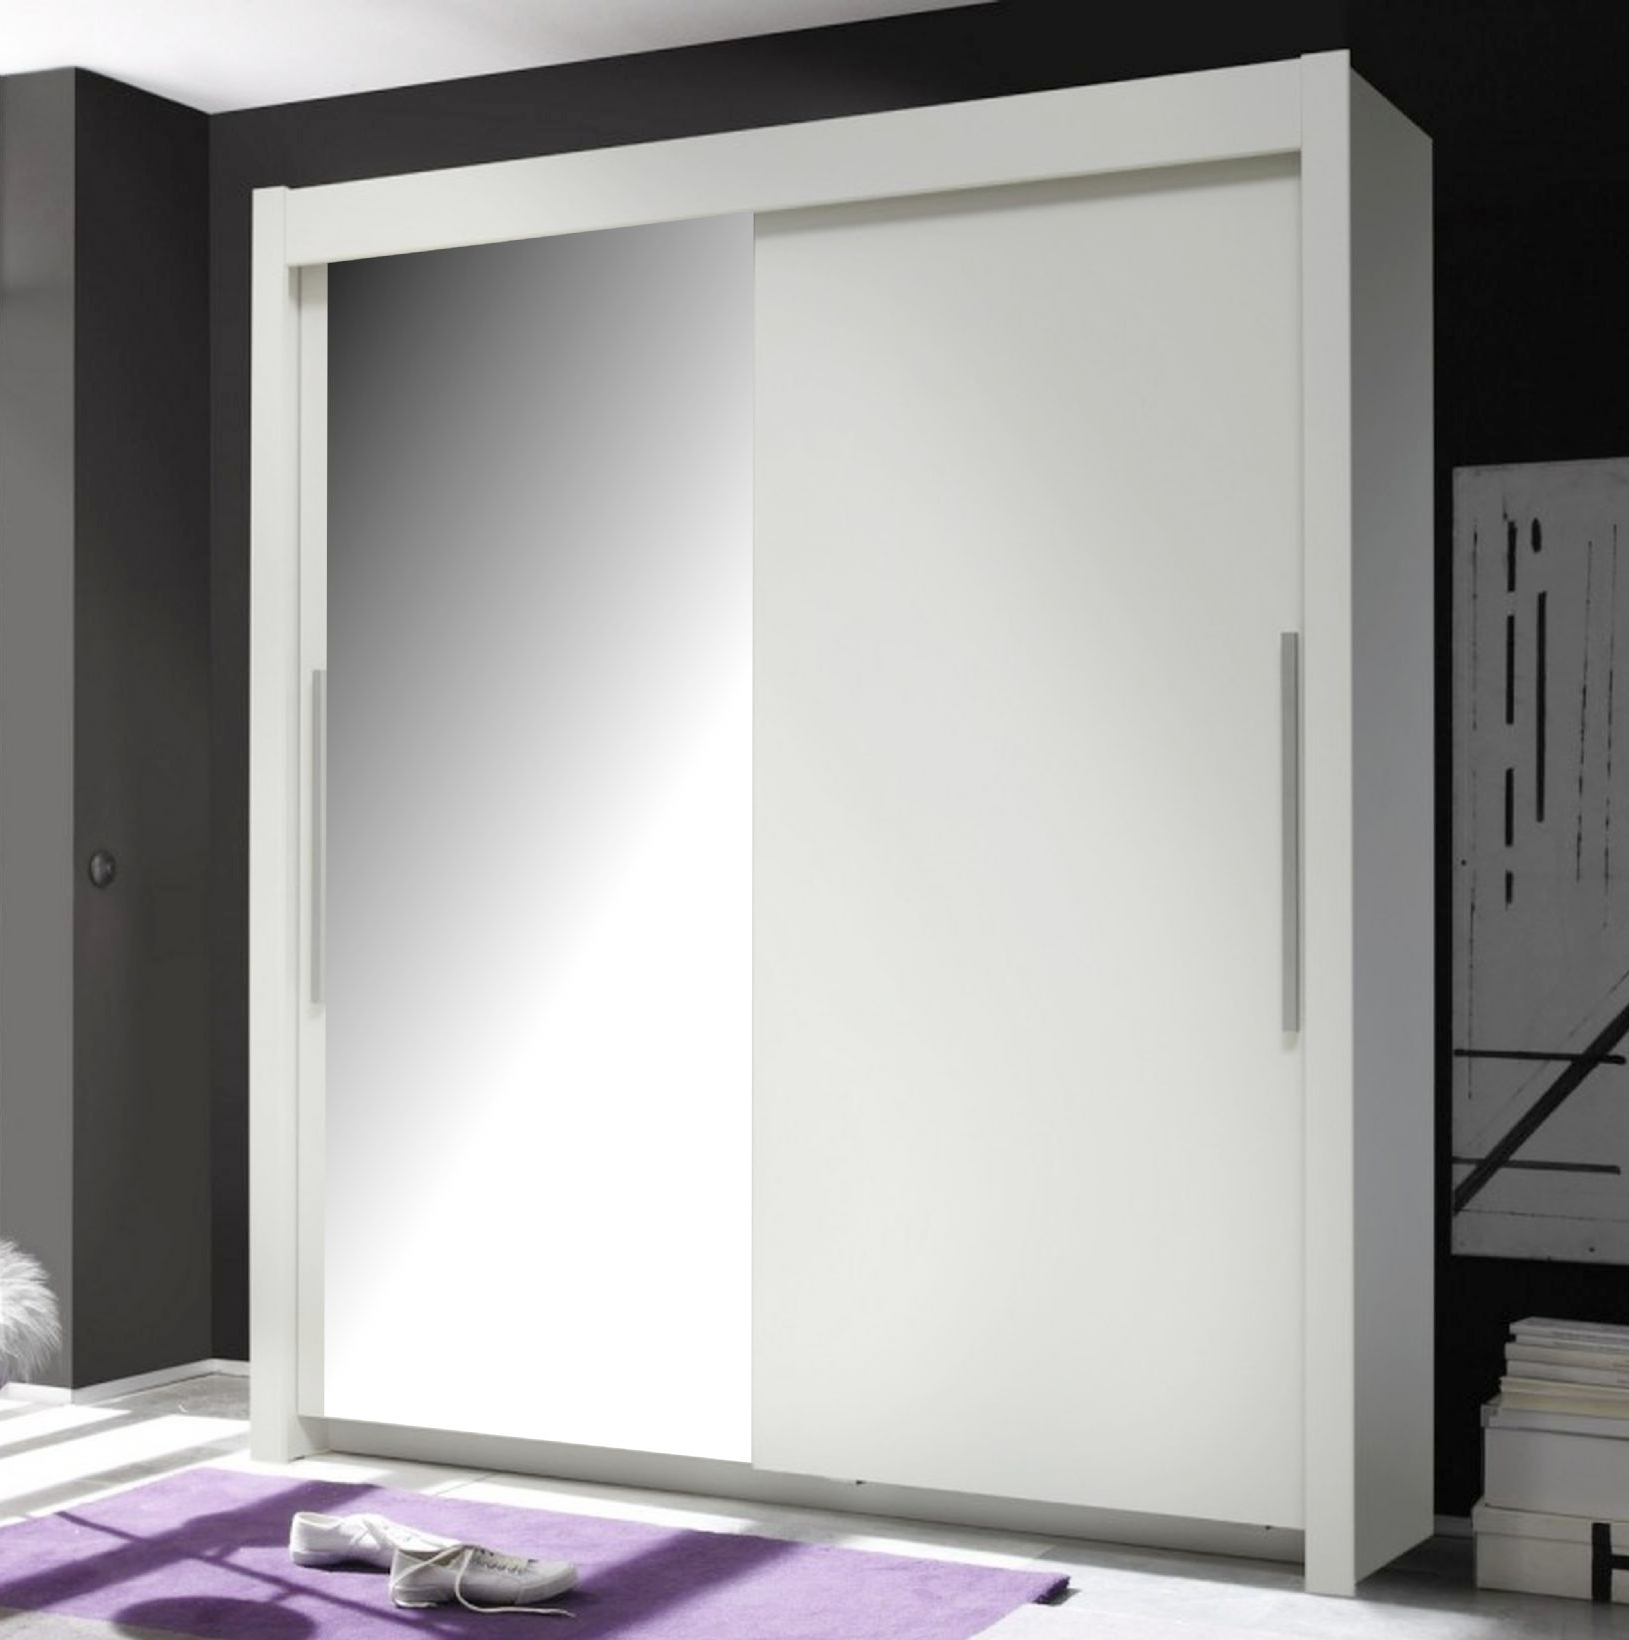 oxford sliding door wardrobe slider white mirrored d01 - White Wardrobe